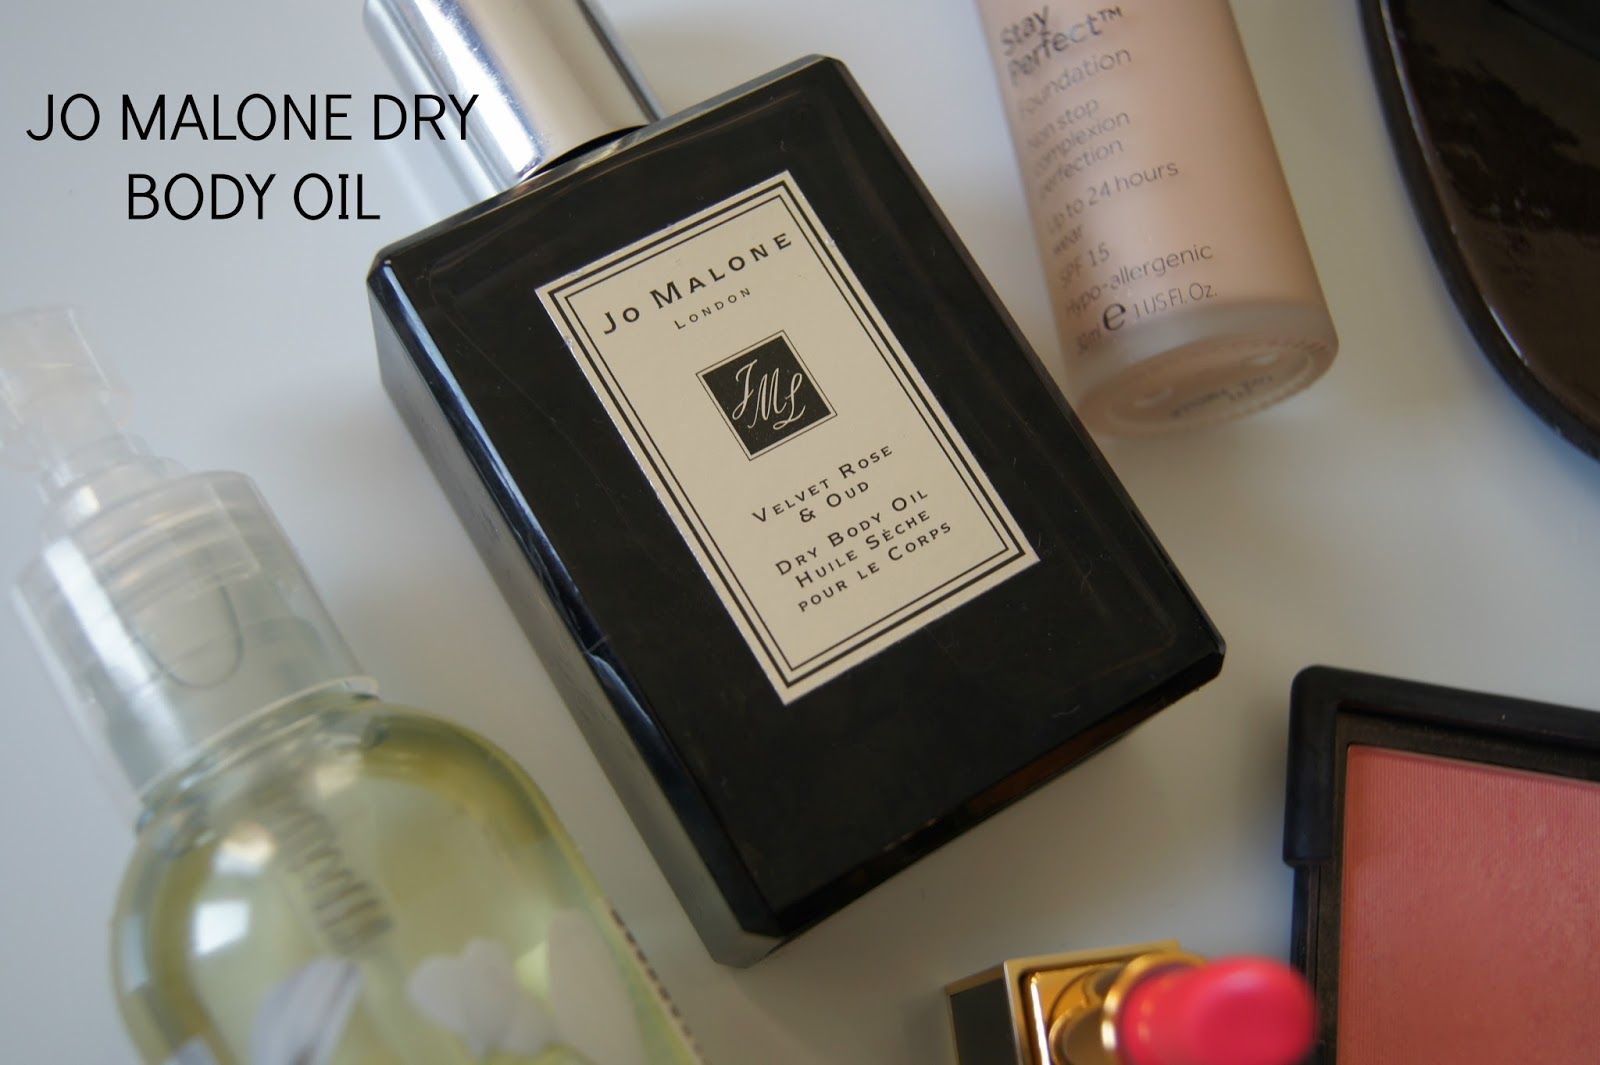 Jo Malone Dry Body Oil